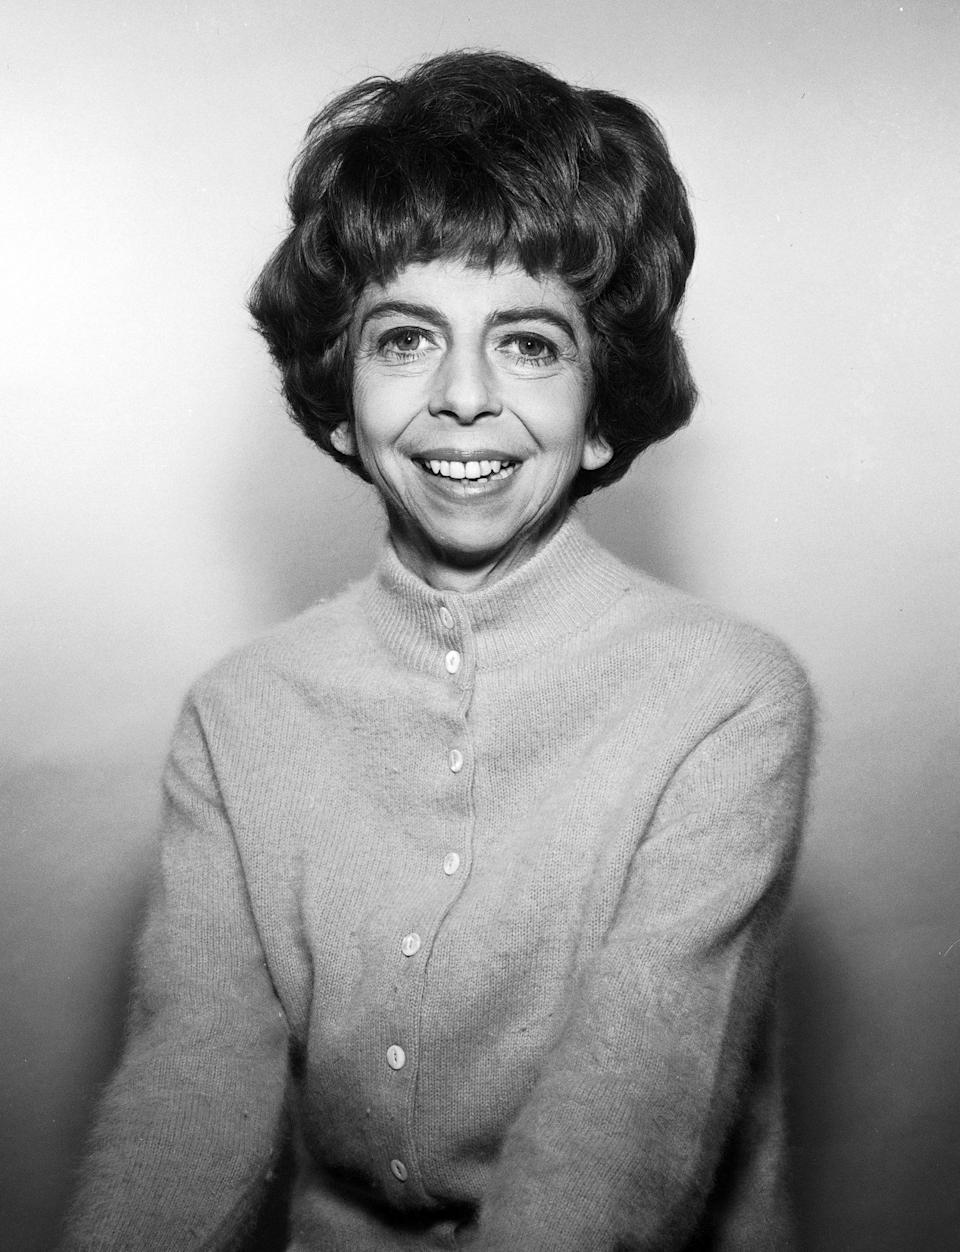 <p>Pearce, who played nosy neigbor Gladys Kravitz on the classic sitcom <em>Bewitched, </em>was nominated for and later won her first Emmy in 1966, just months after her death from ovarian cancer. </p>